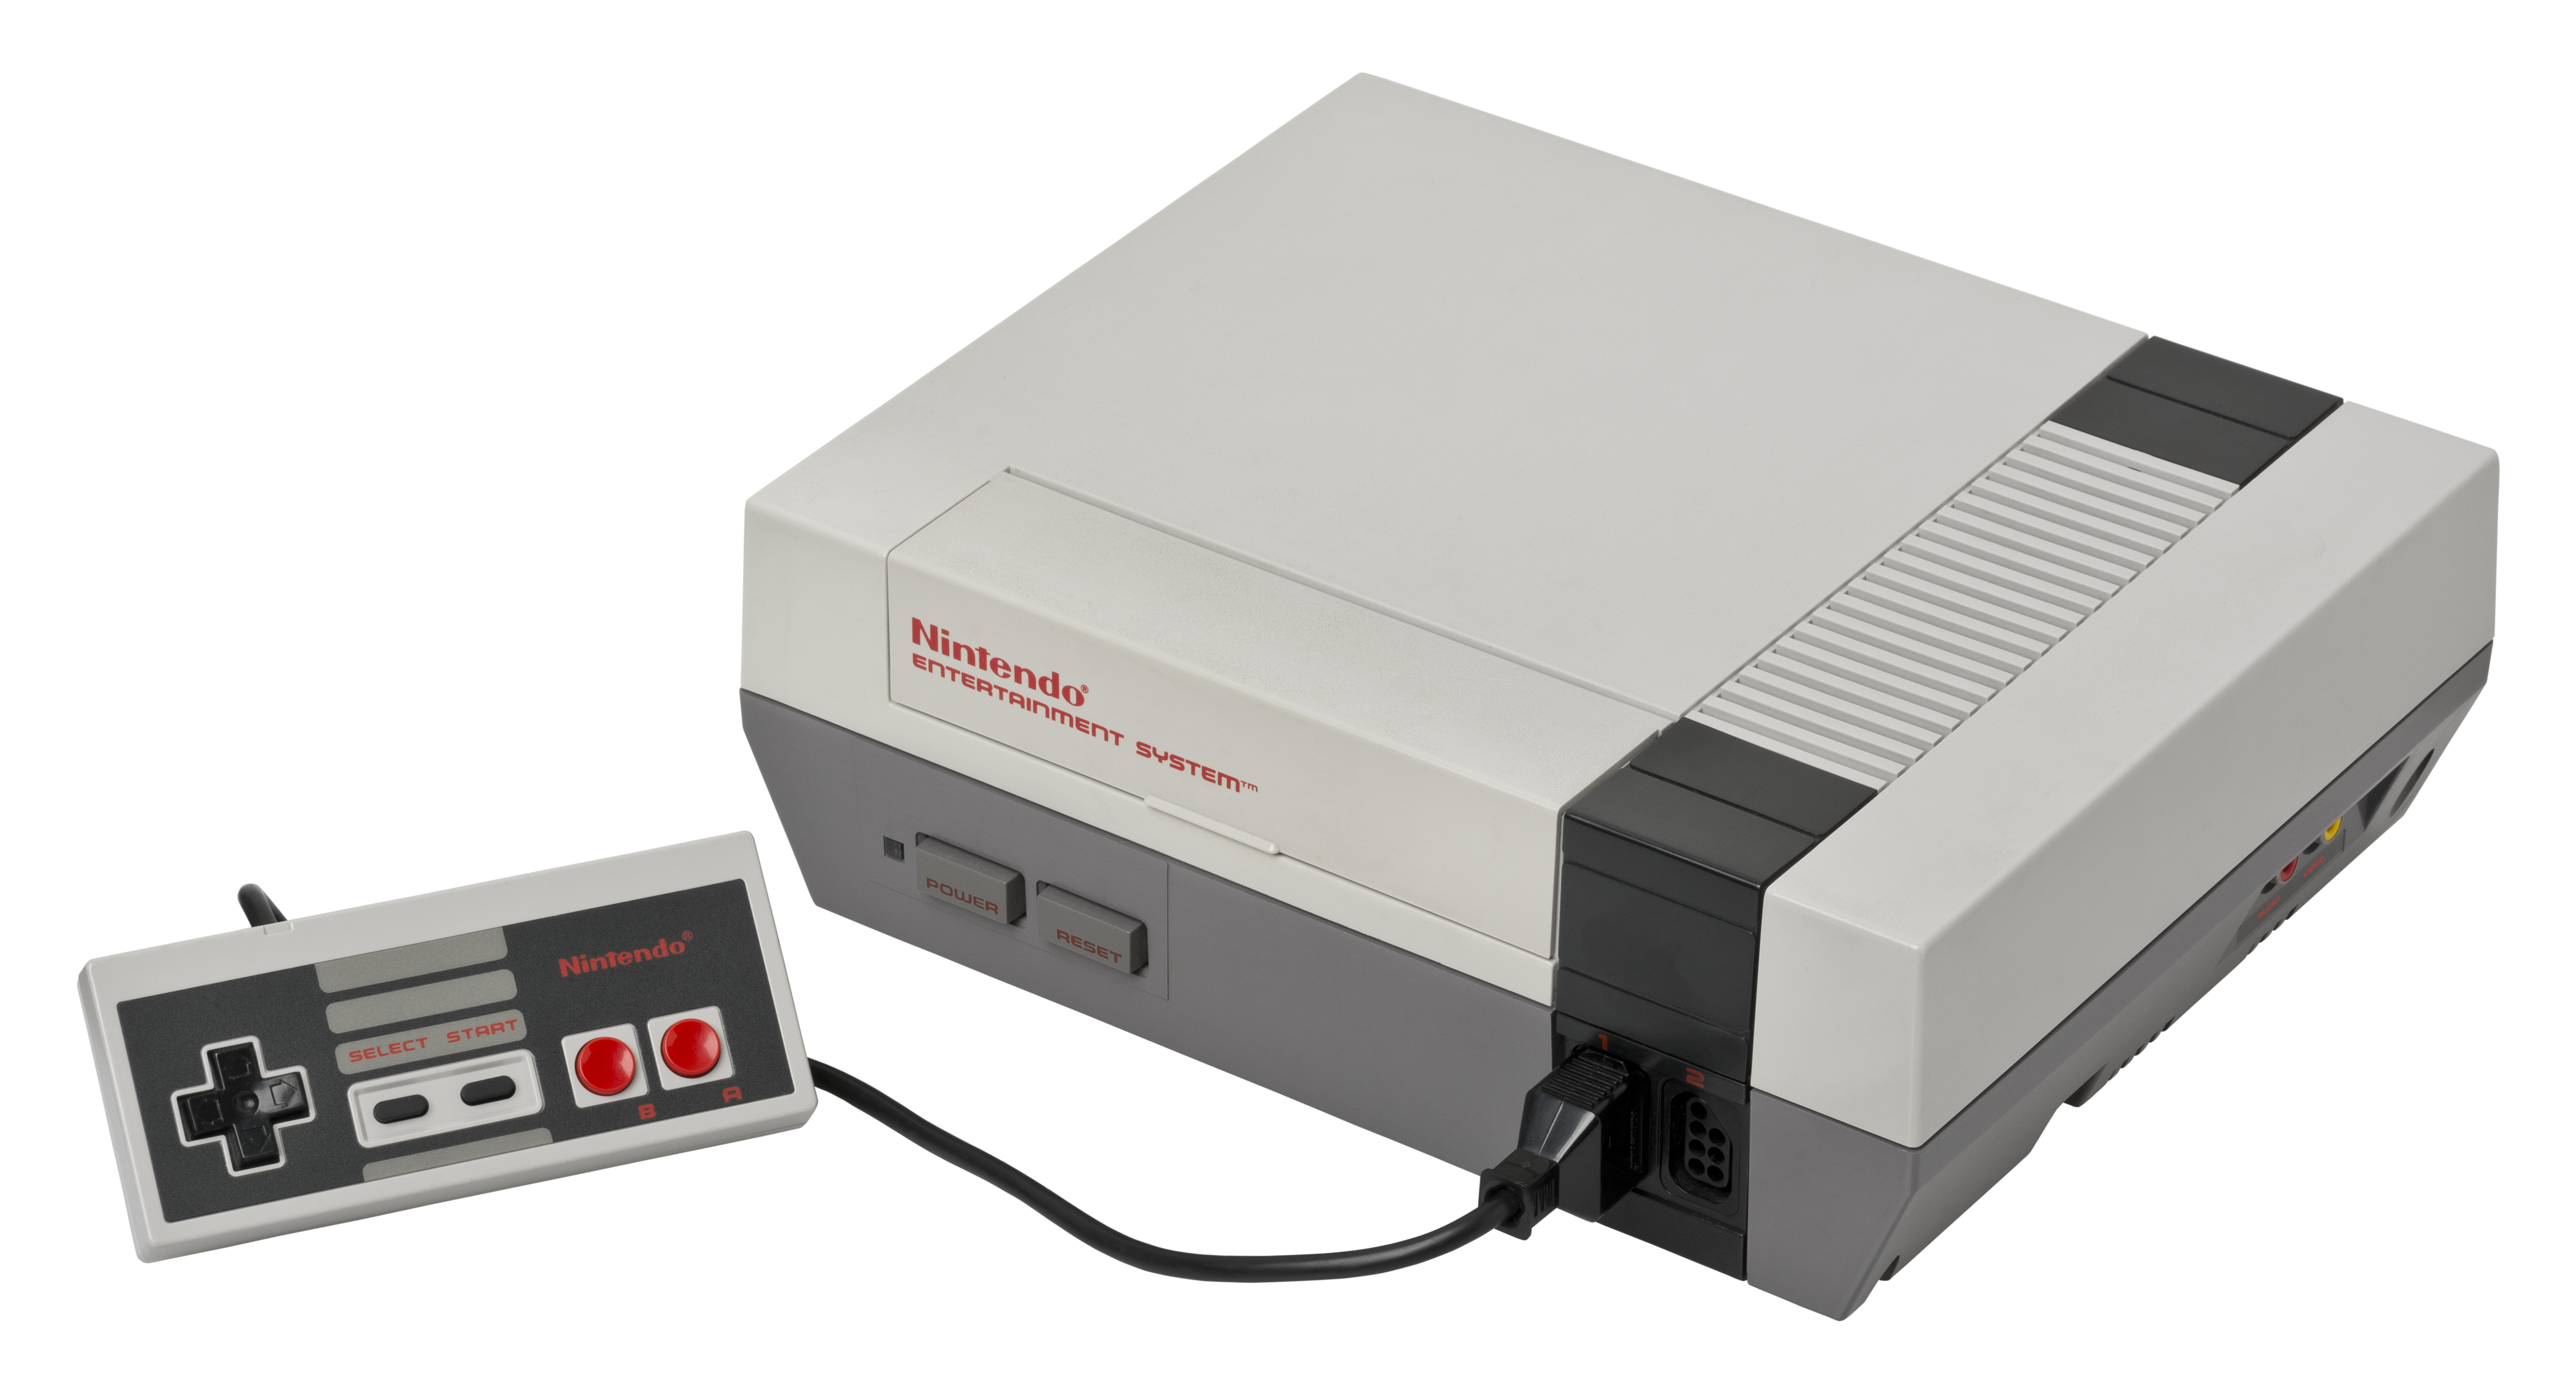 Nintendo Entertainment System.png